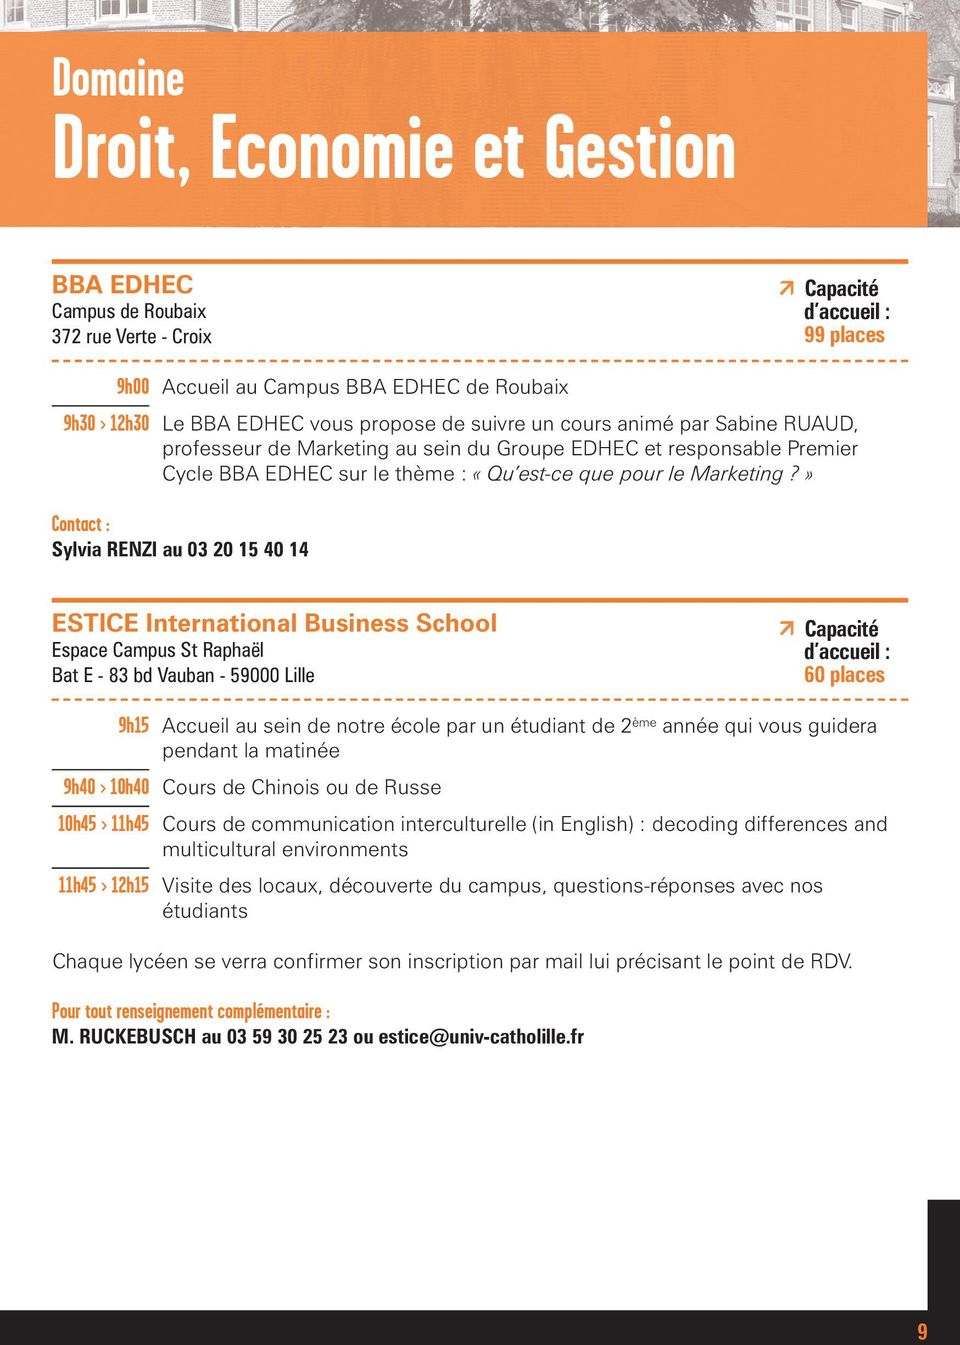 » Contact : Sylvia RENZI au 03 20 15 40 14 ESTICE International Business School Espace Campus St Raphaël Bat E - 83 bd Vauban - 59000 Lille 60 places 9h15 Accueil au sein de notre école par un